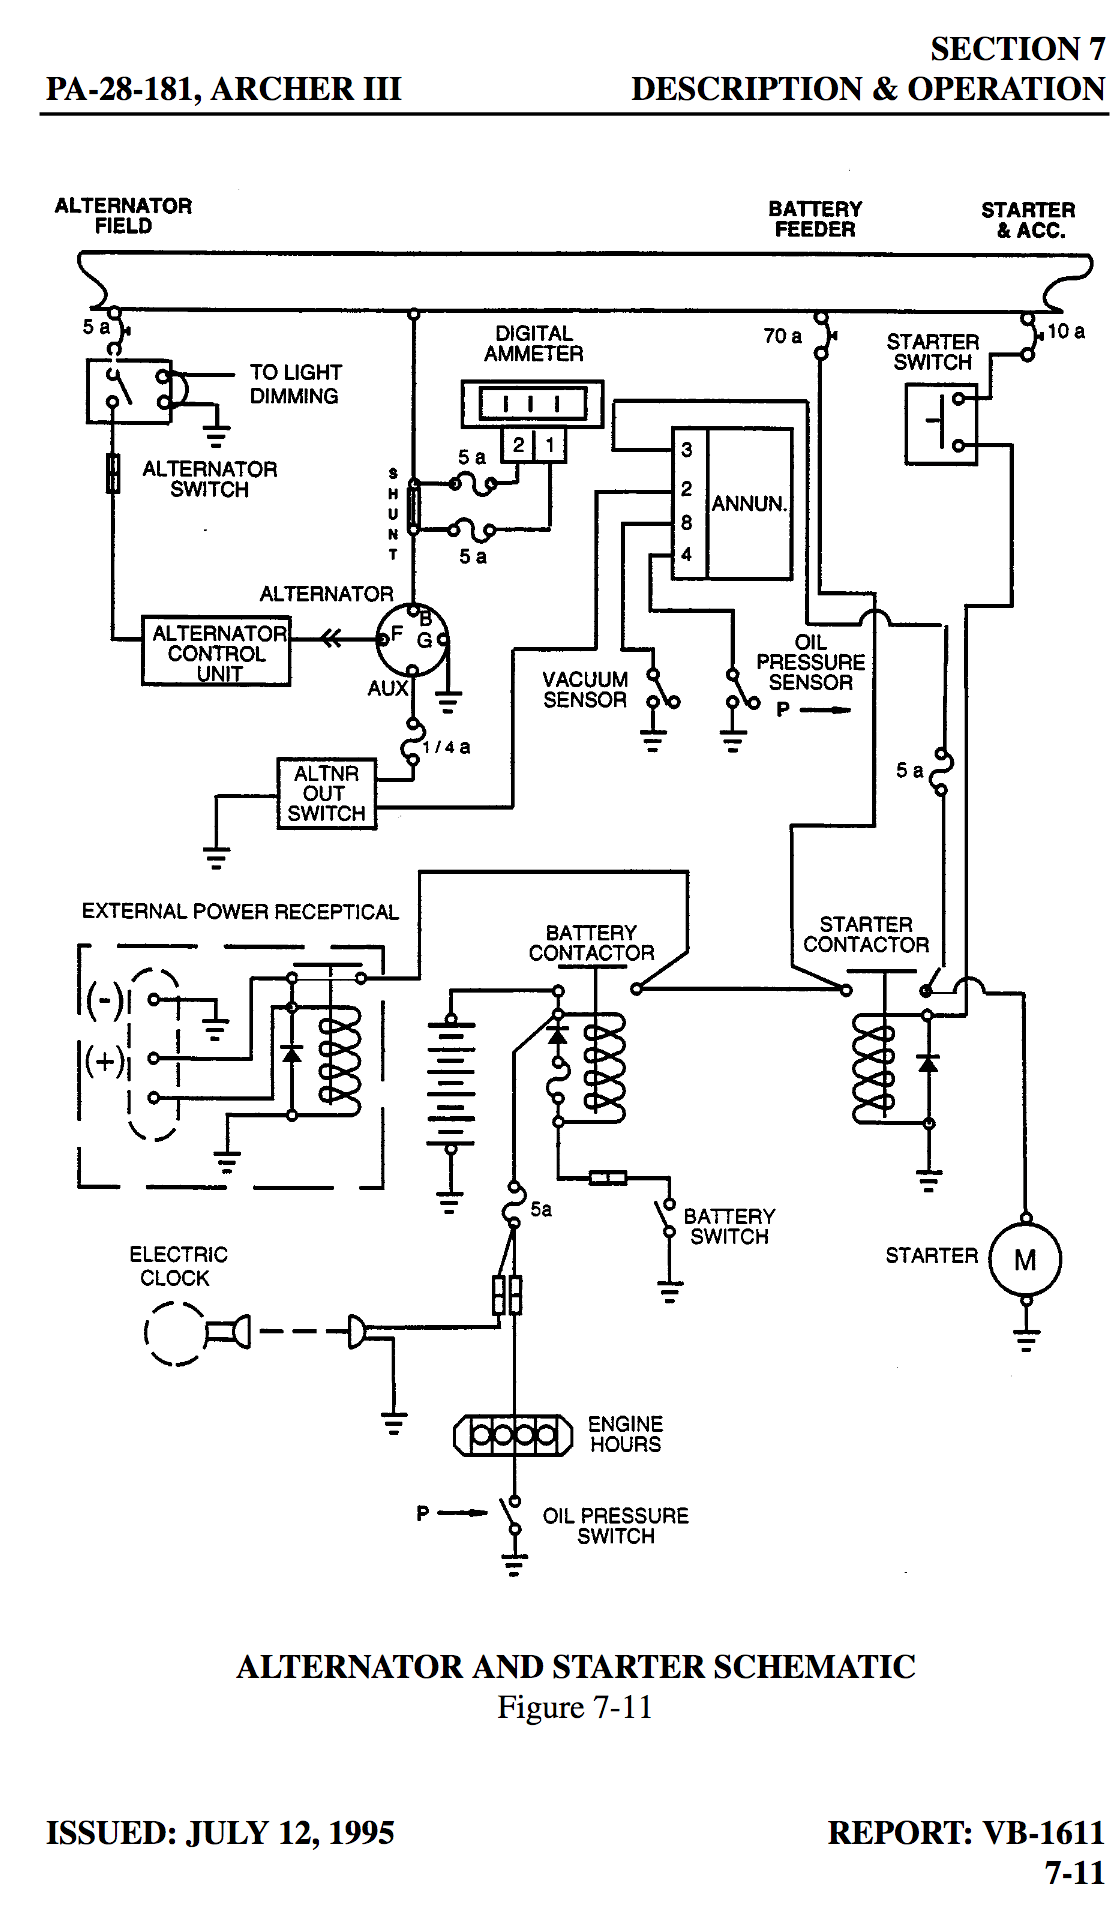 wiring diagram for digital ammeter